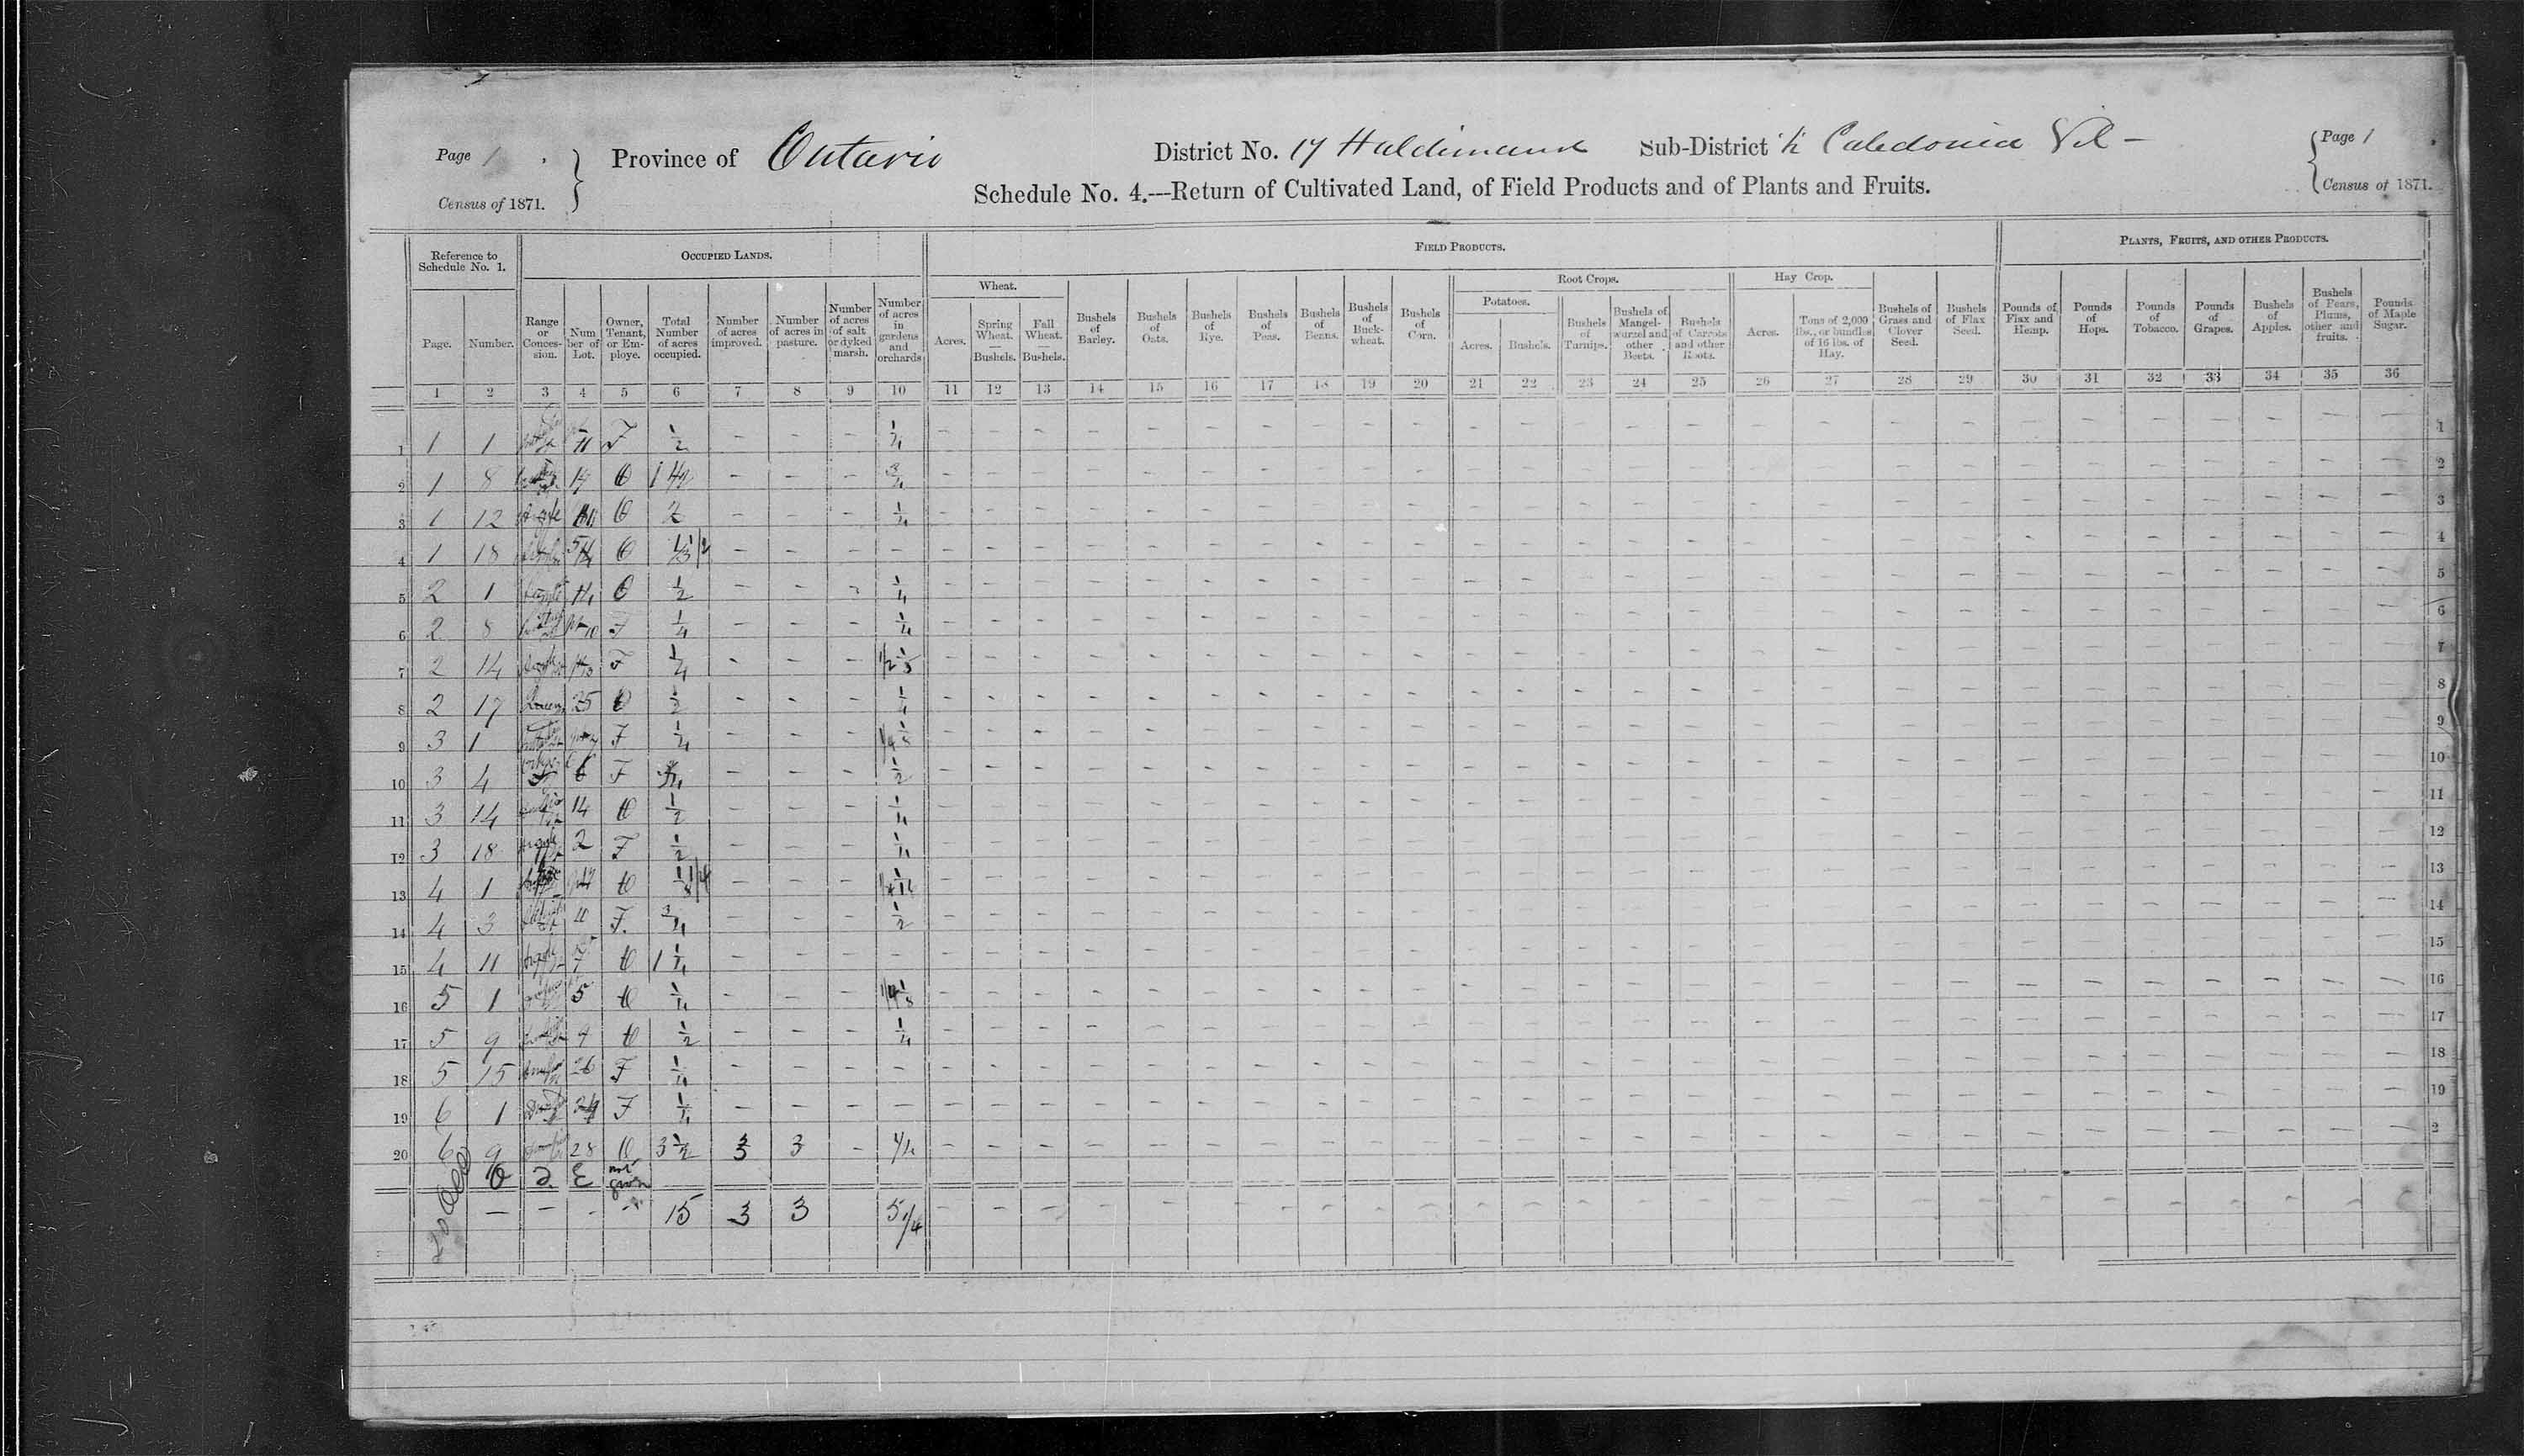 Title: Census of Canada, 1871 - Mikan Number: 142105 - Microform: c-9918